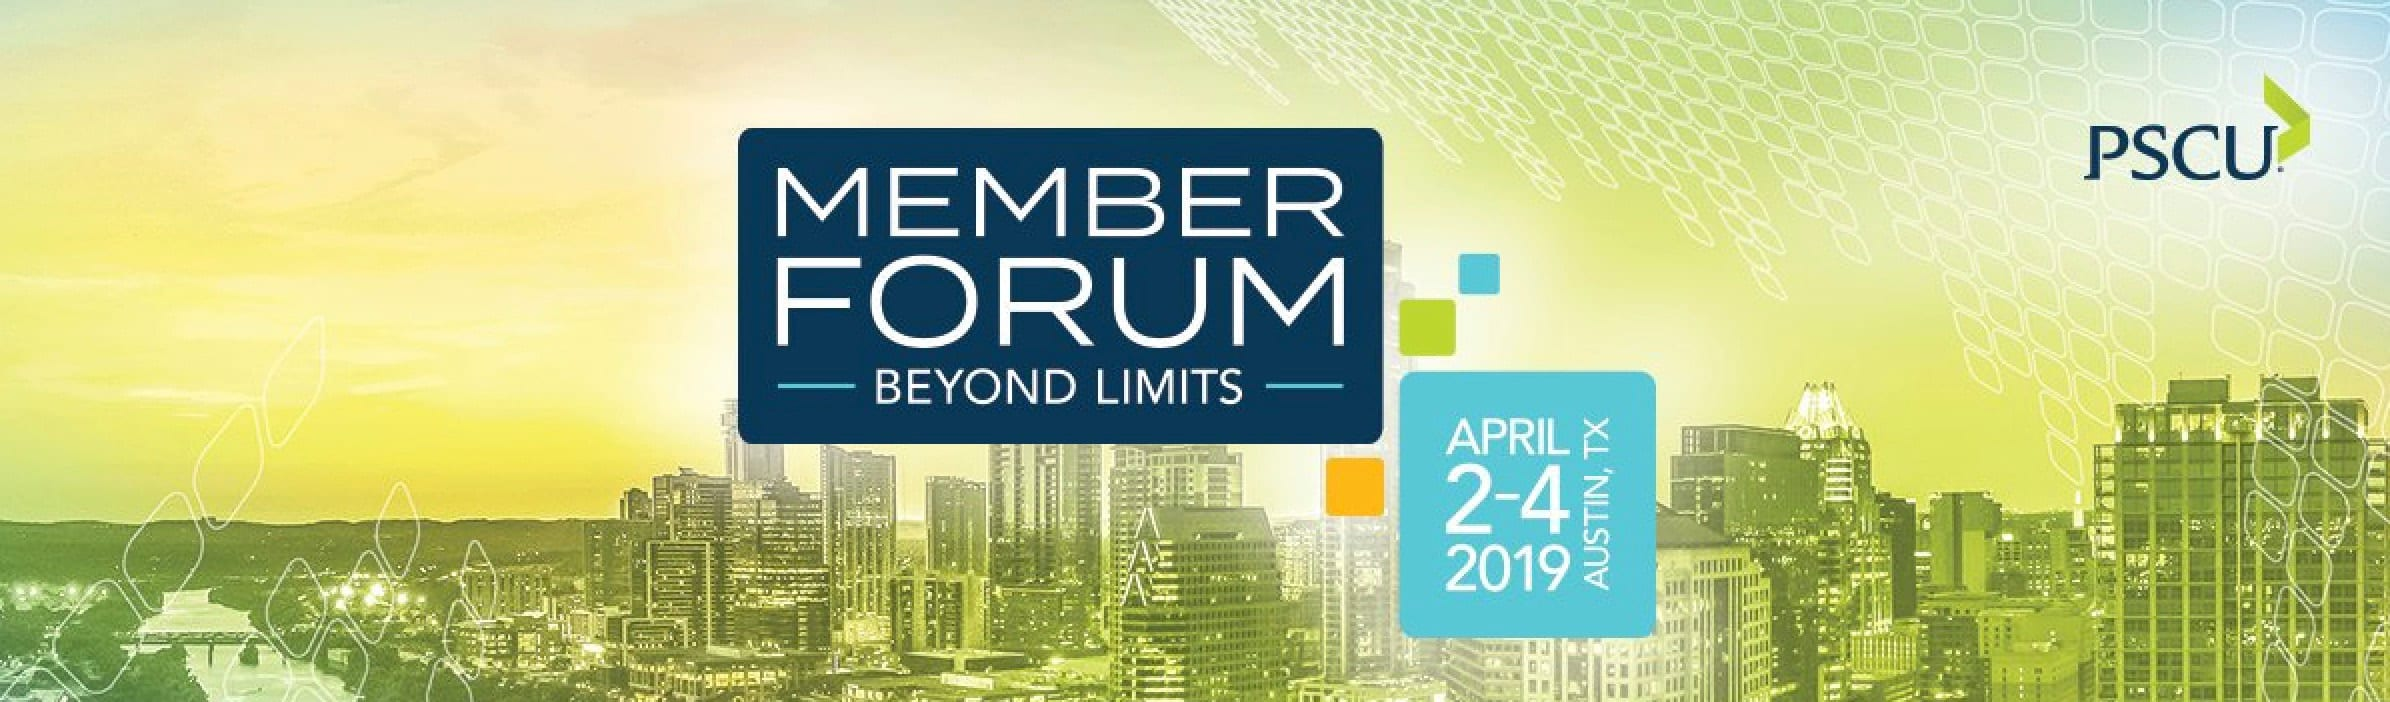 PSCU Member Forum Beyond Limits - April 2-4, 2019 in Austin, Texas